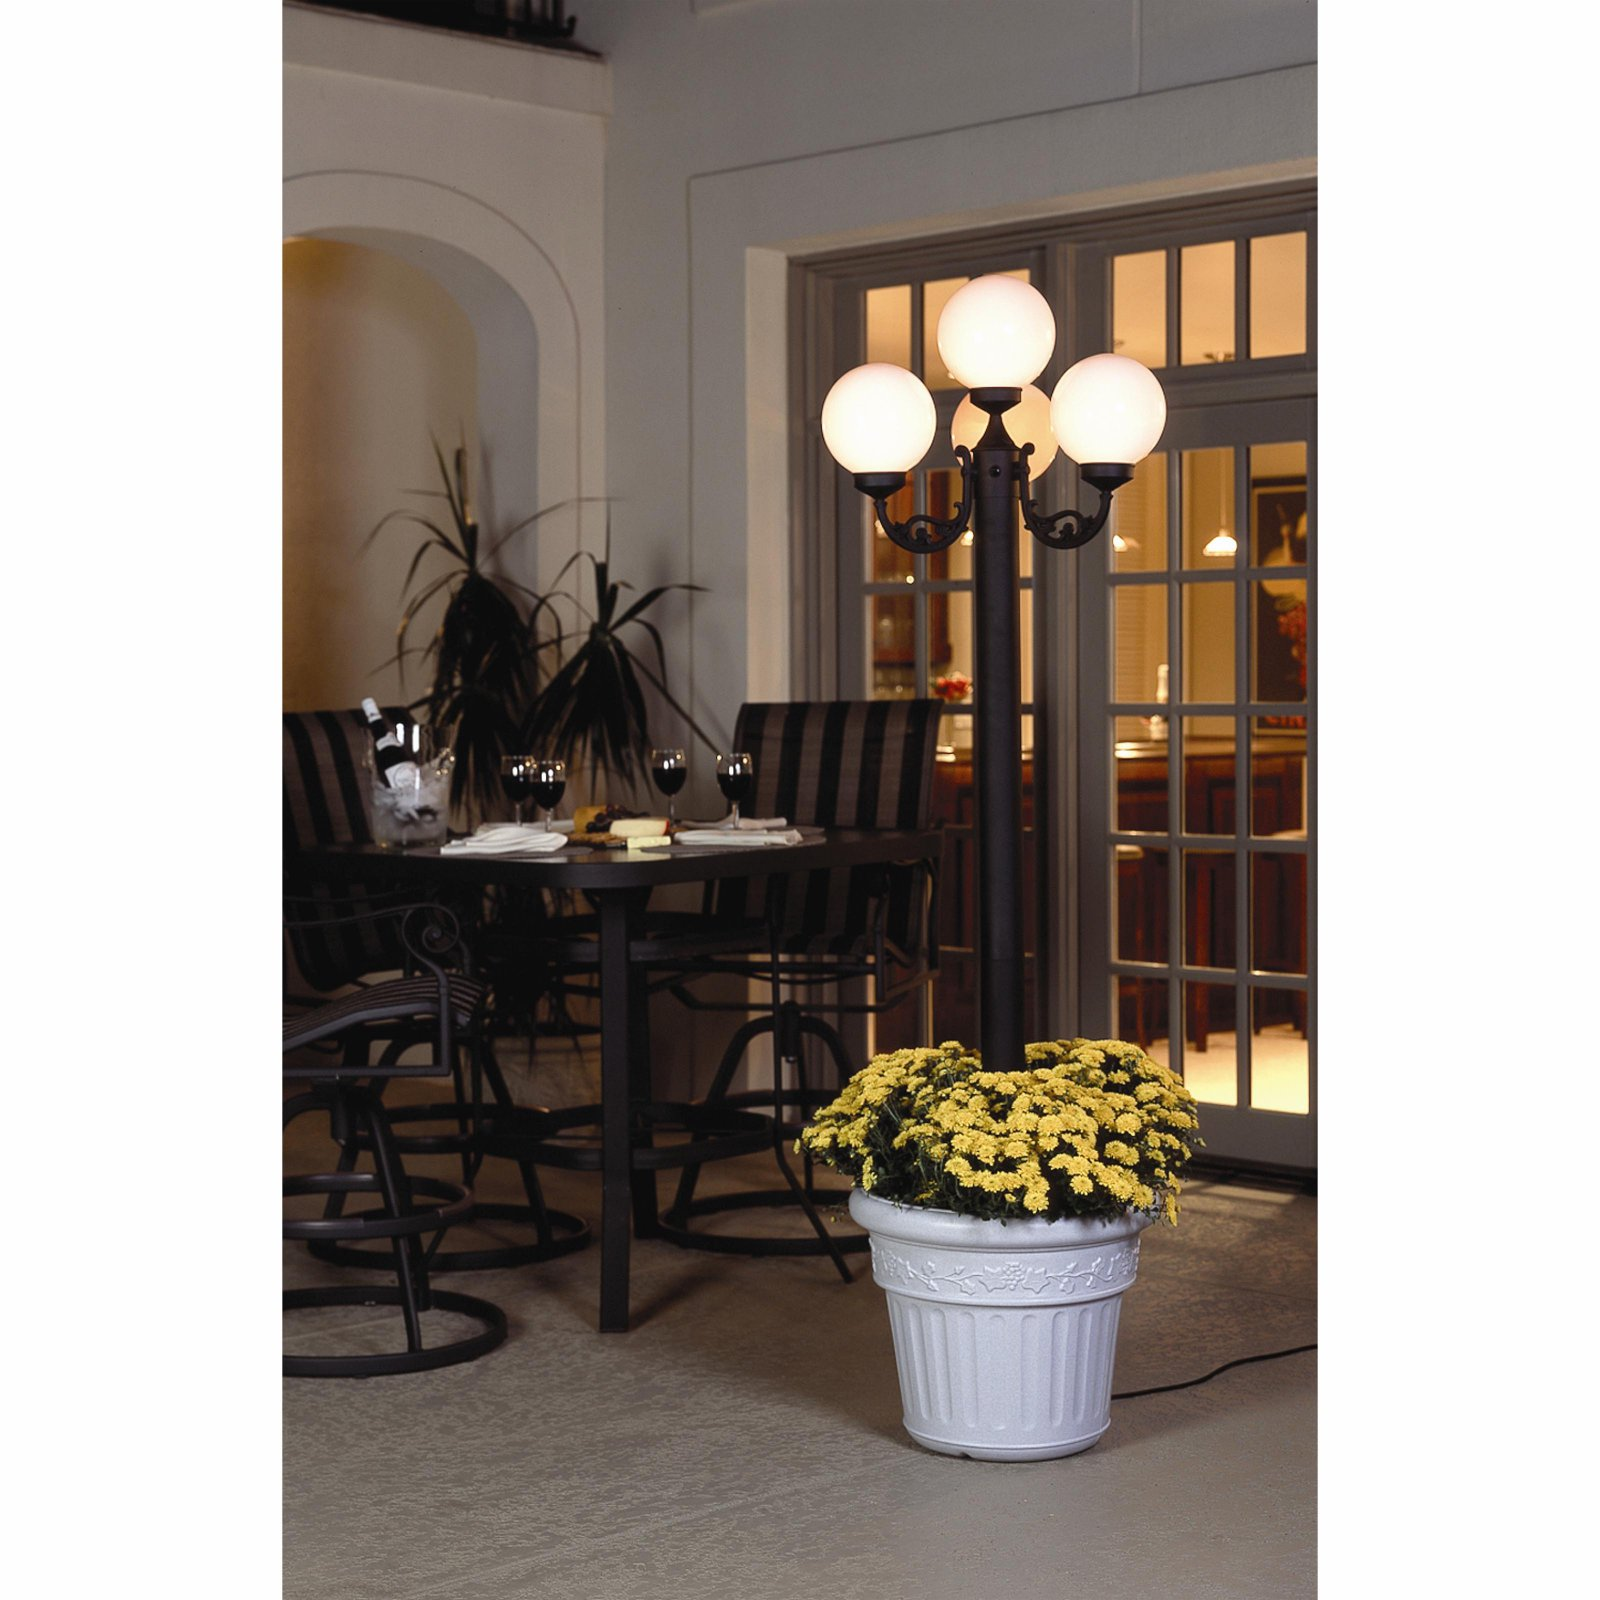 Patio Living Concepts European Outdoor Patio Lamp